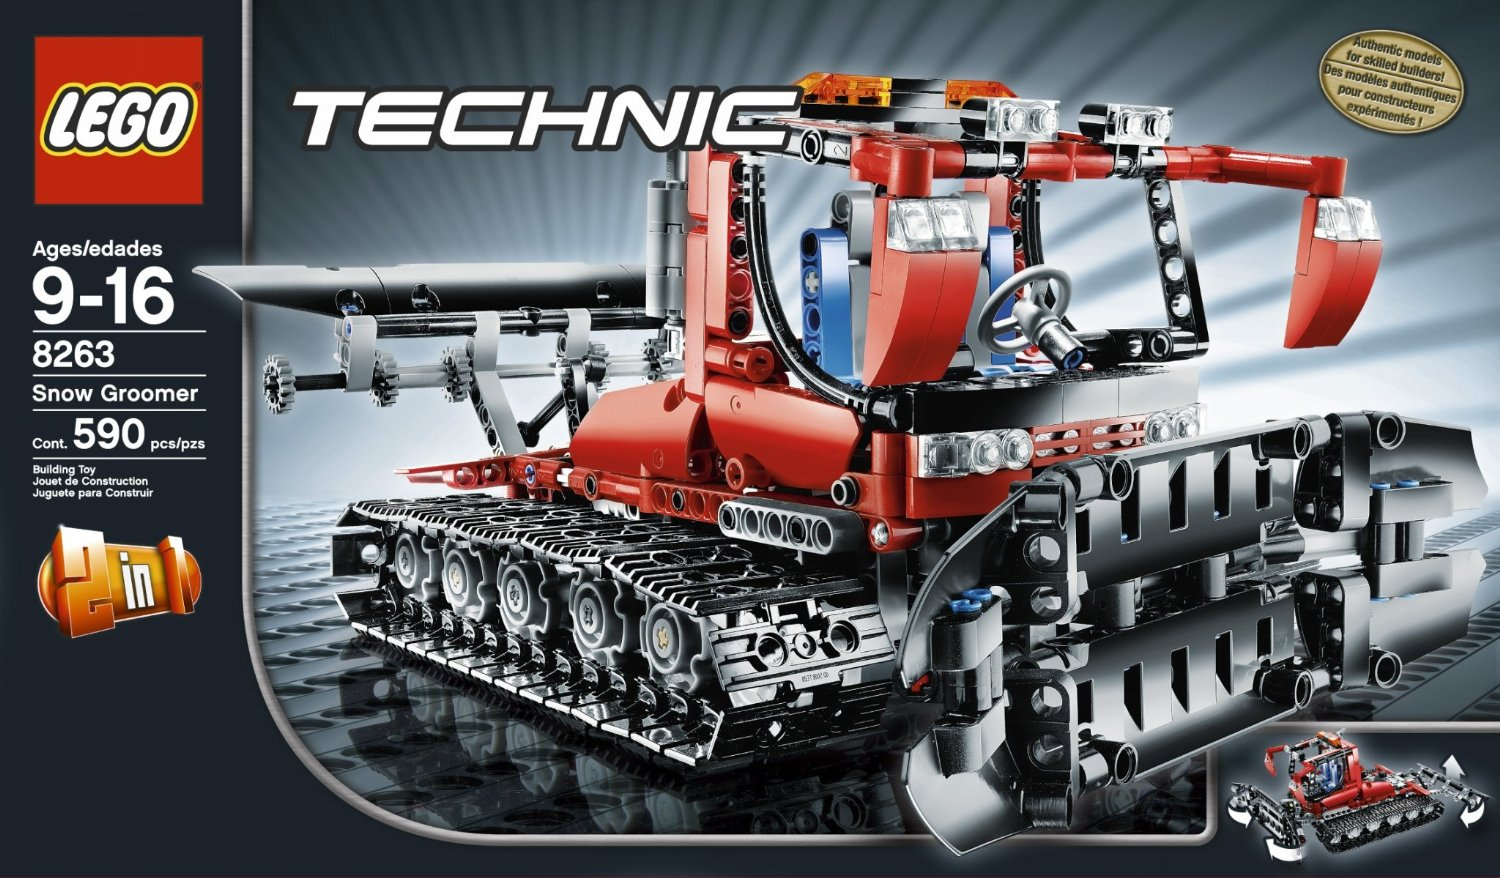 LEGO Technic Snow Groomer